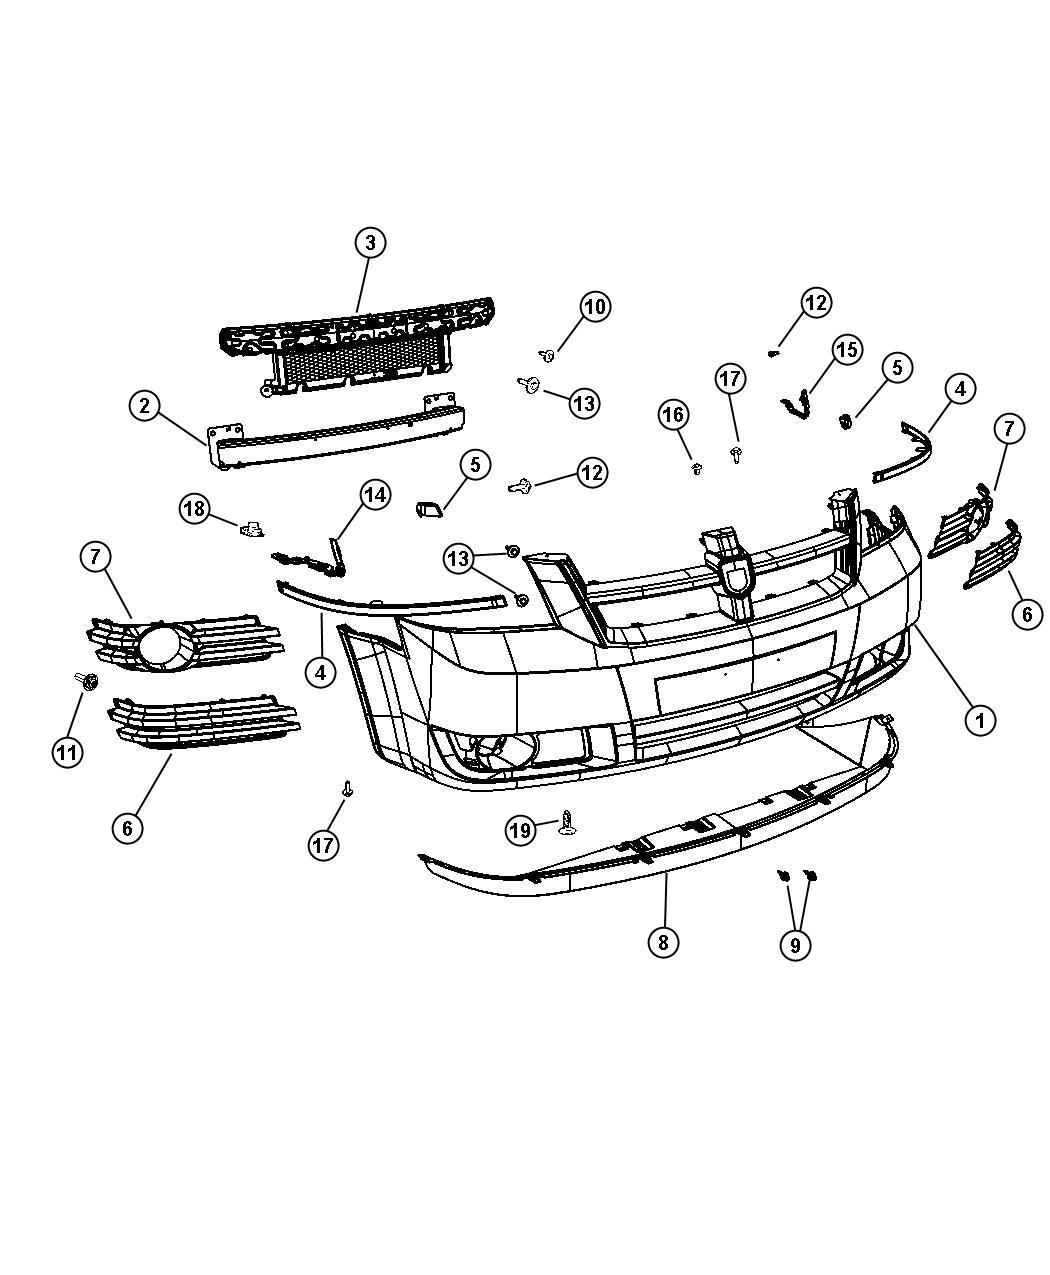 2009 Dodge Grand Caravan Parts Diagram Schematic Diagrams Engine 2011 Body Electrical Work Wiring 2006